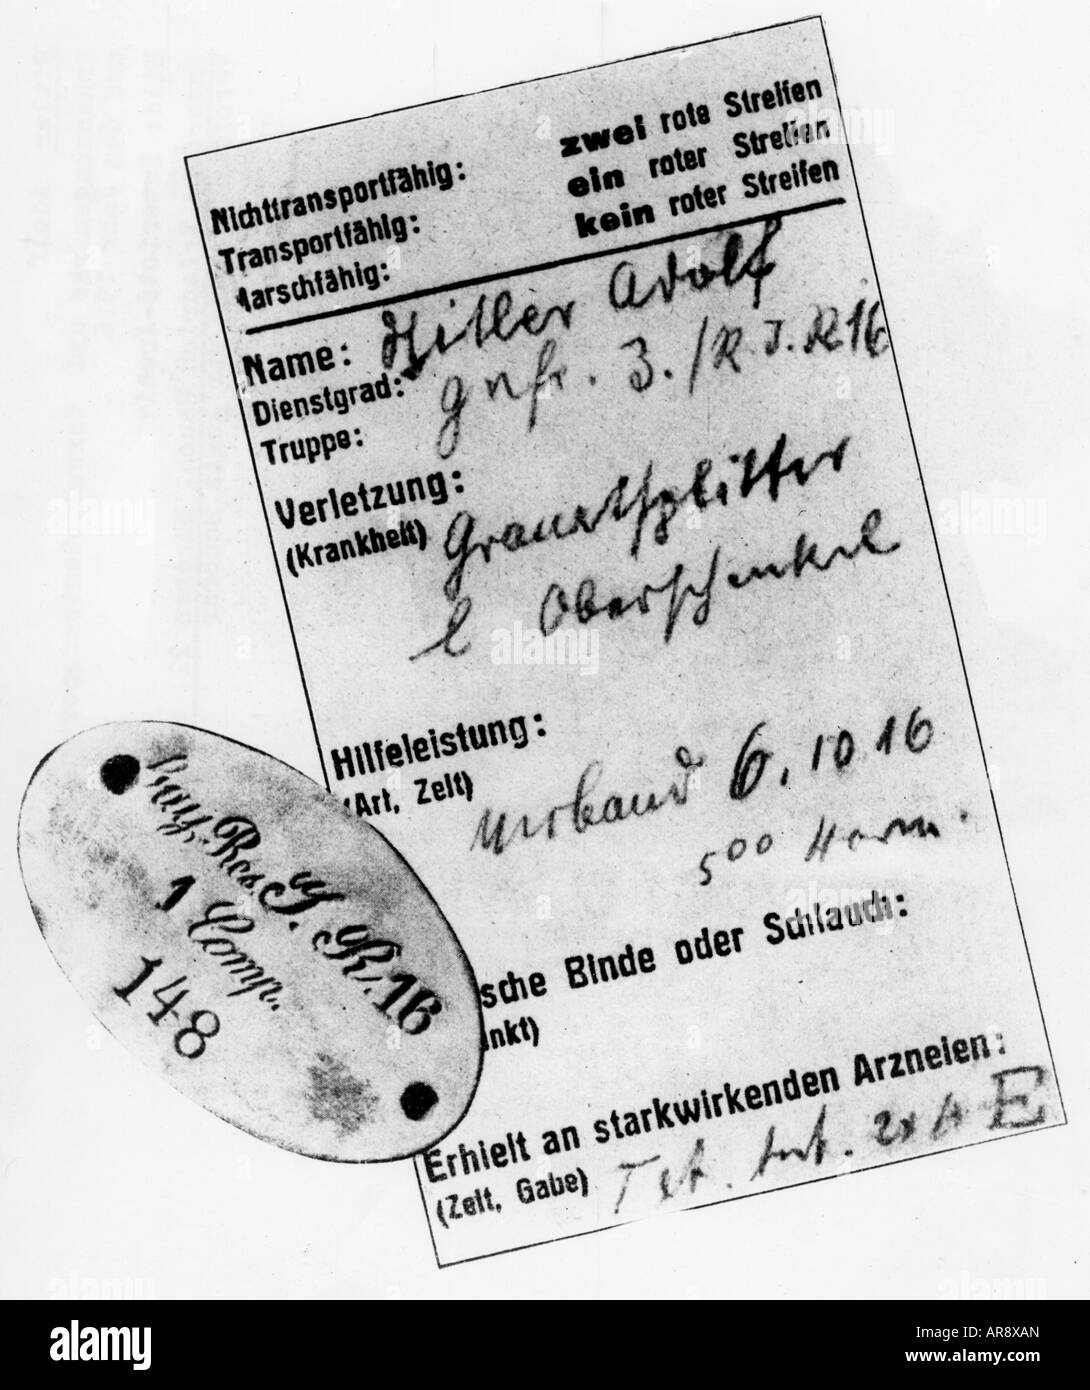 Hitler, Adolf, 20.4.1889 - 30.4.1945, German politician (NSDAP), identification tags and batch card after being - Stock Image